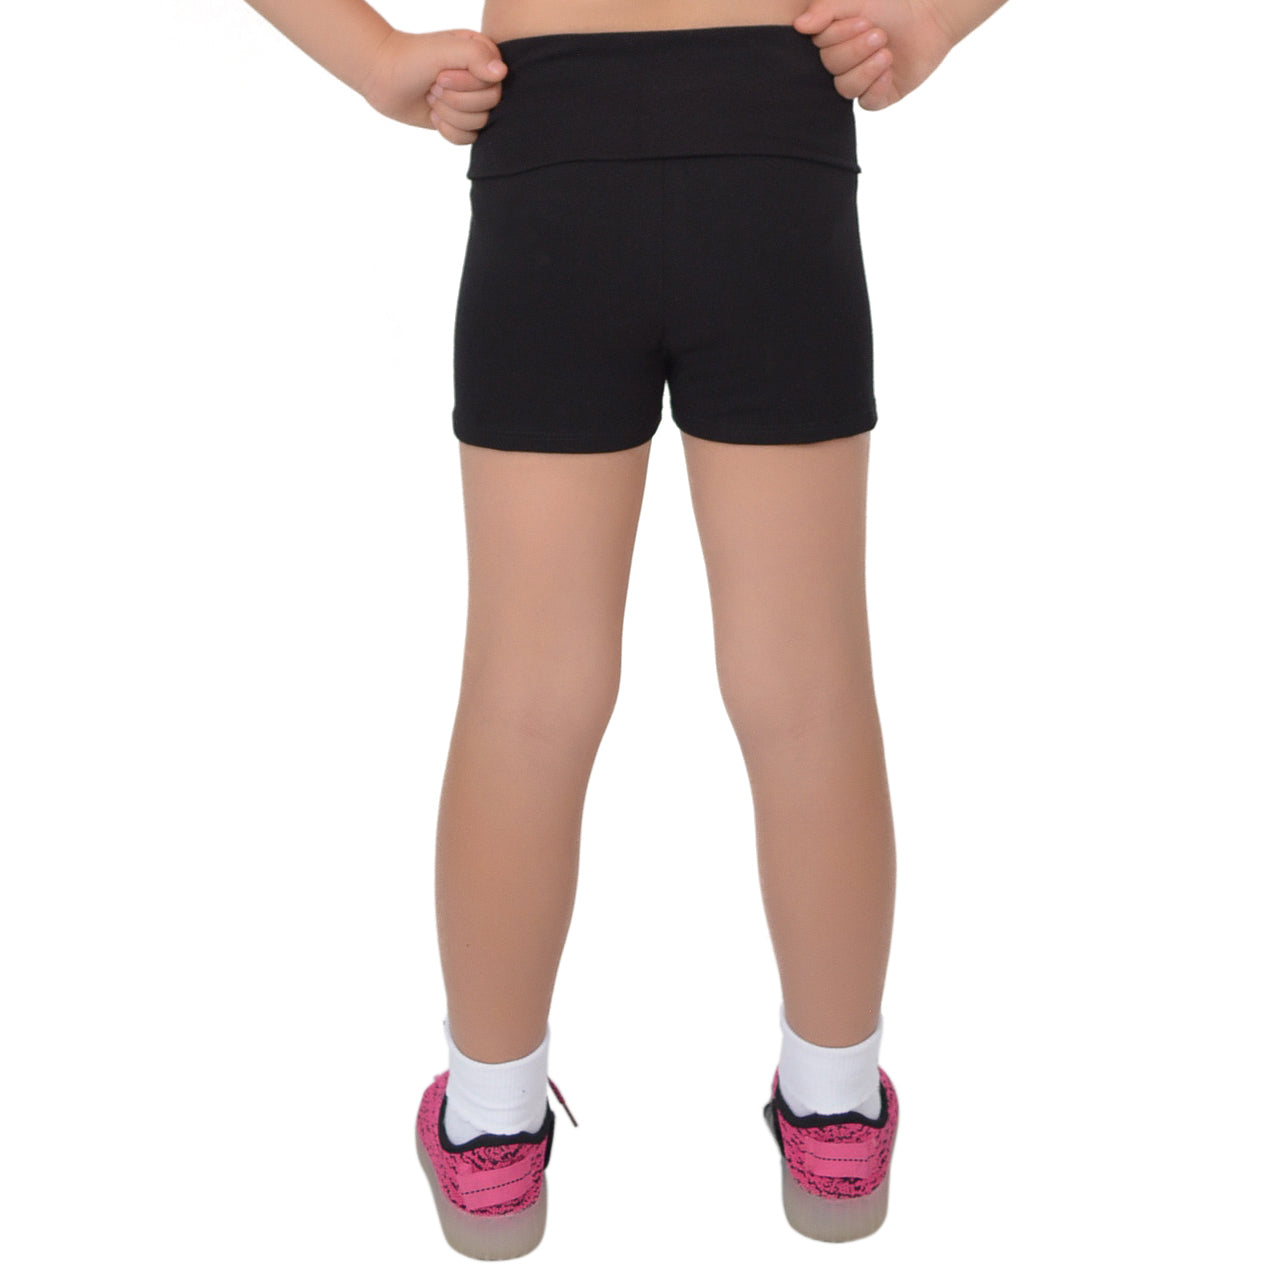 Girl's Yoga Shorts